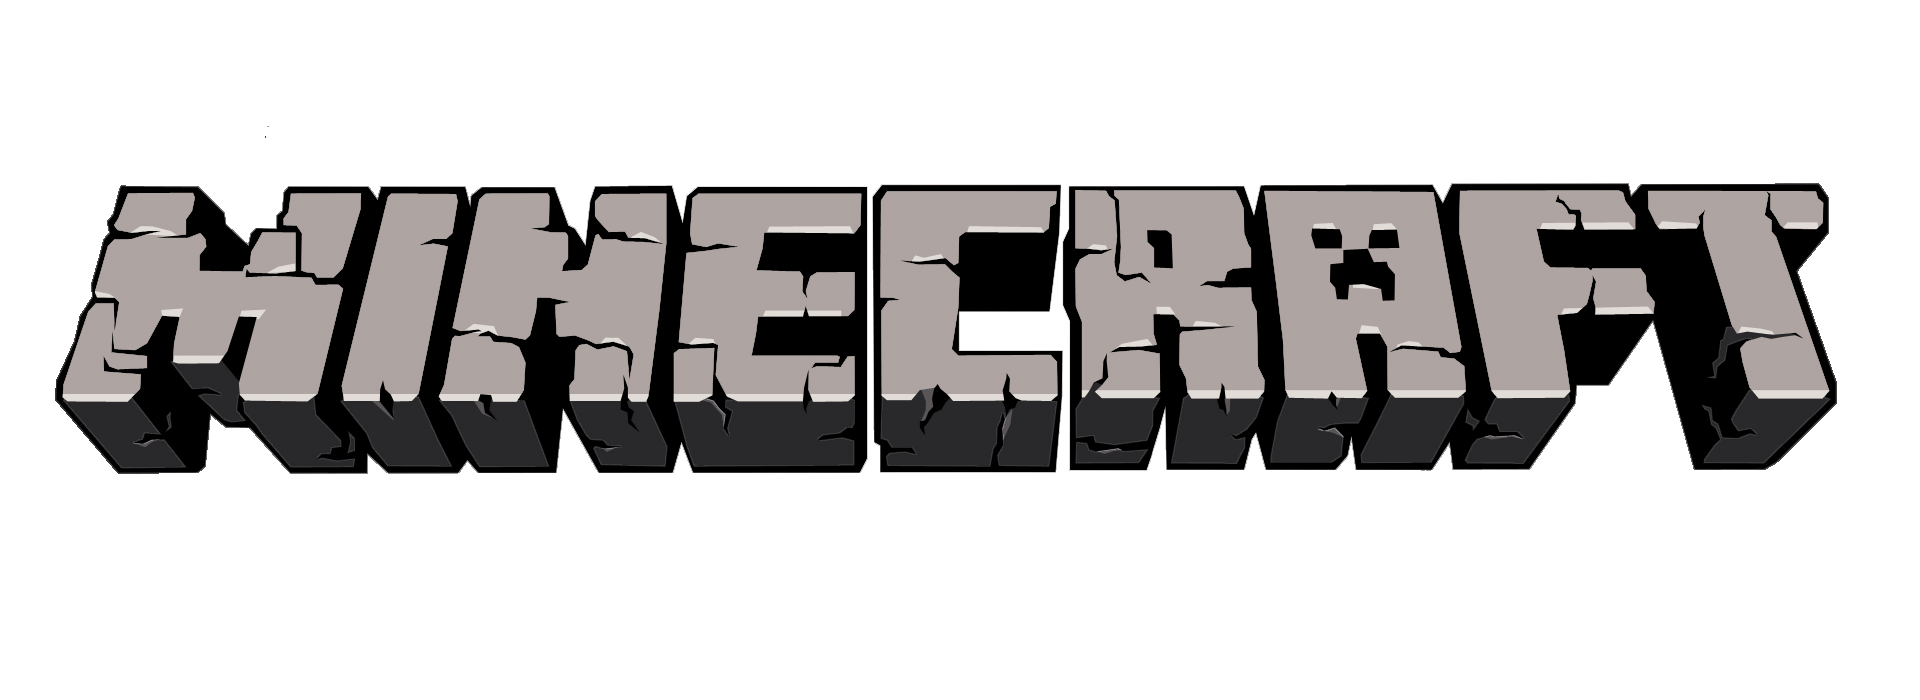 http://images.wikia.com/miniek/images/2/26/1328800264_minecraft-logo.png